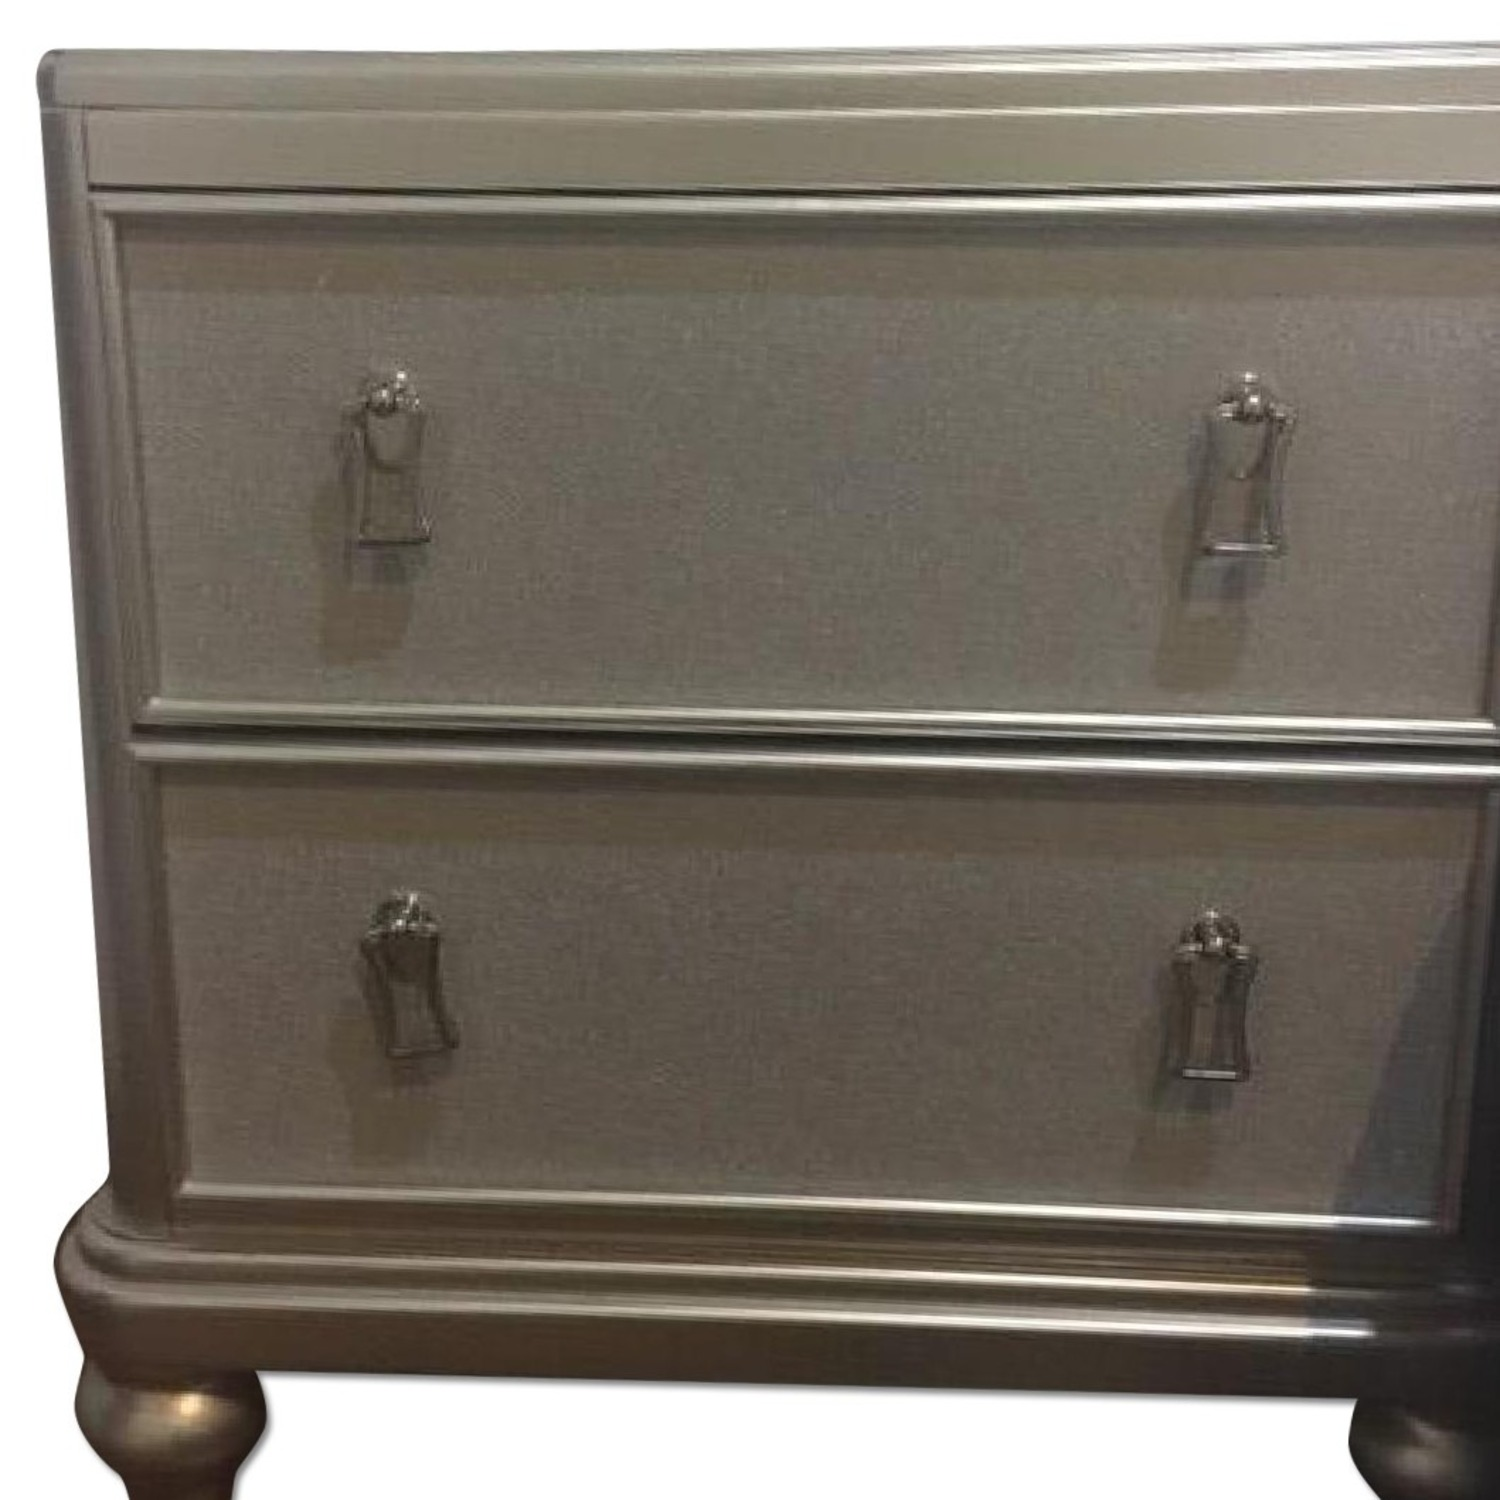 Bob's Discount Furniture Silver Nightstand - image-6